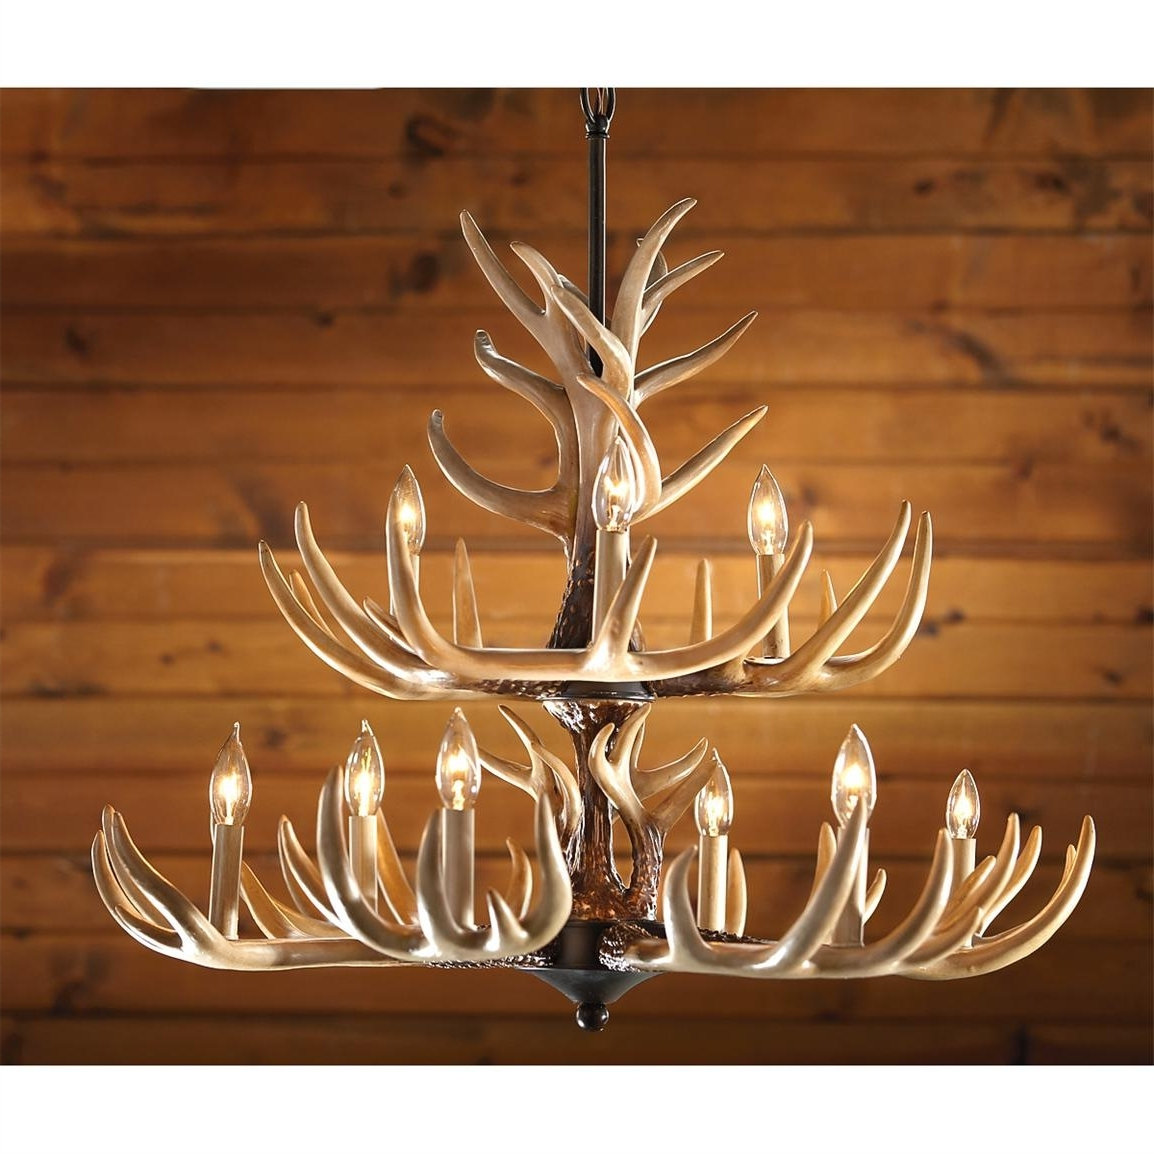 Antler Chandelier With Well Liked Castlecreek 9 Light Whitetail Antler Chandelier – 226093, Lighting (View 9 of 15)